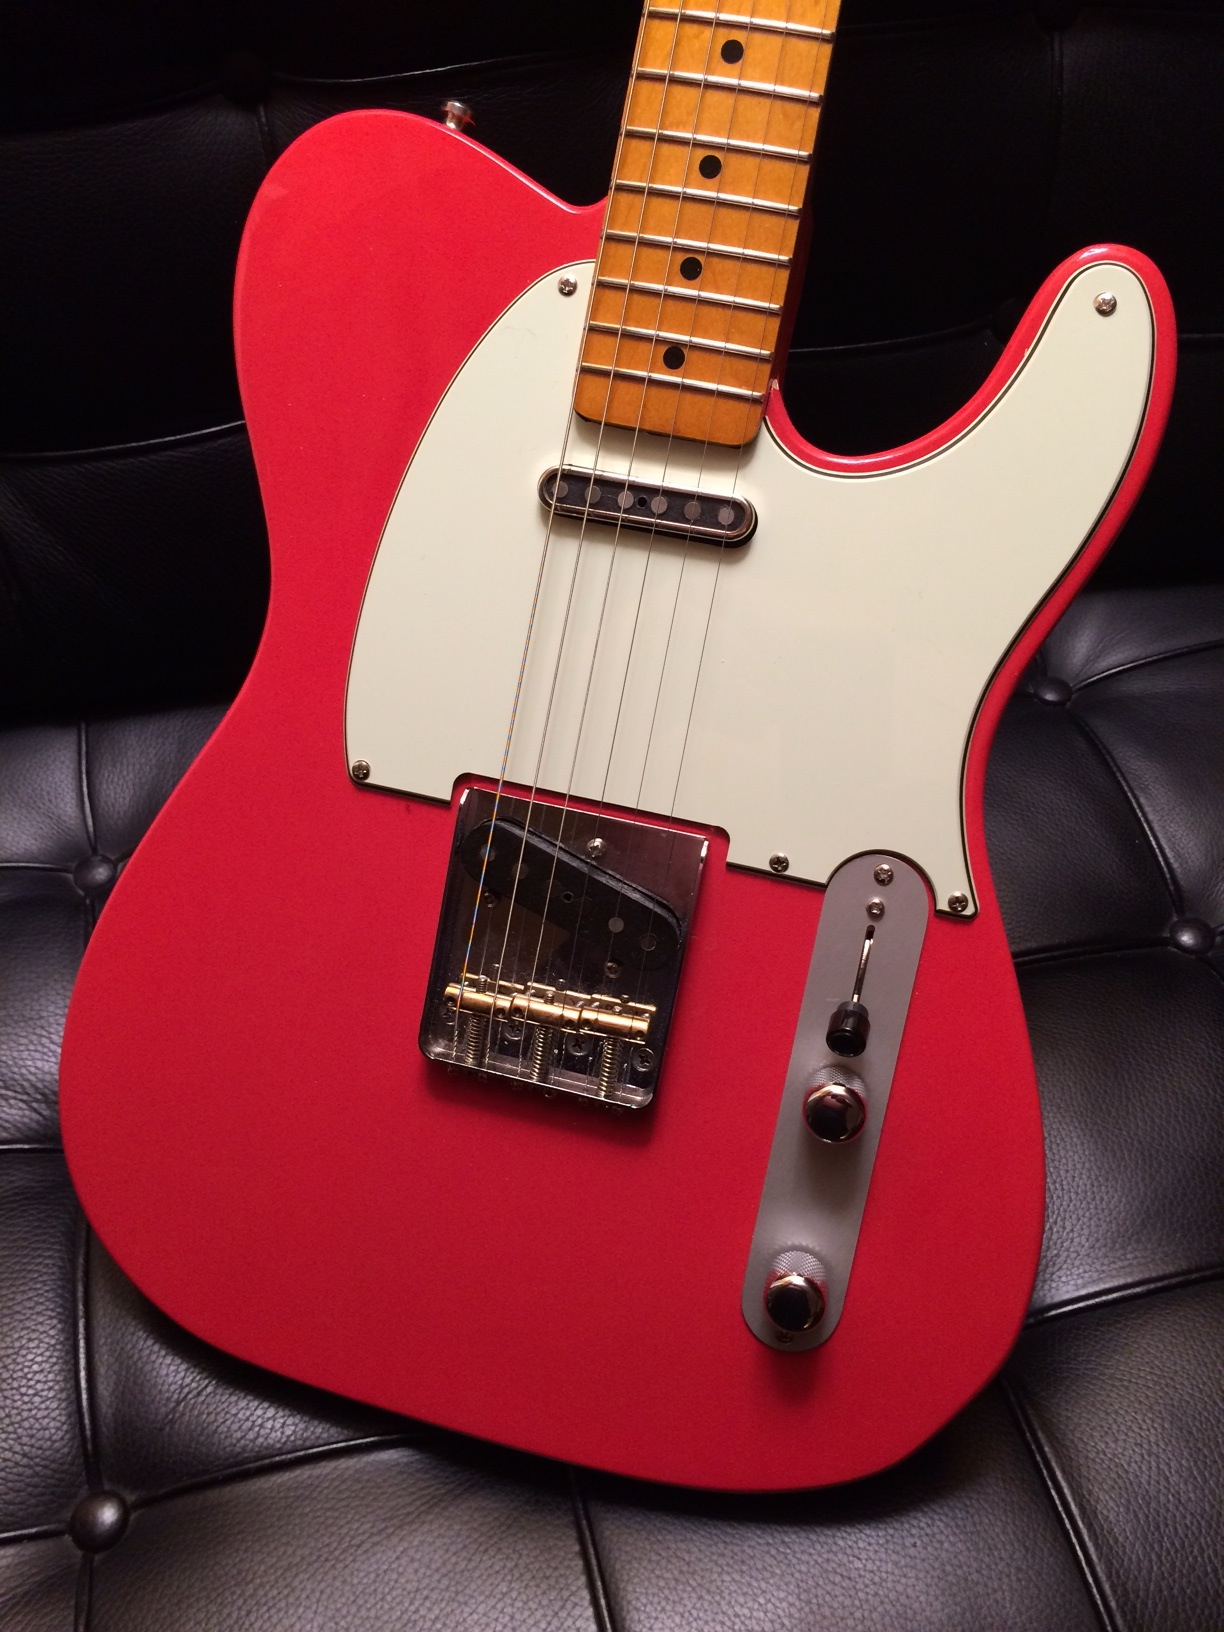 Telecaster Love Thread, No Archtops Allowed-tele-toploader_8503-jpg